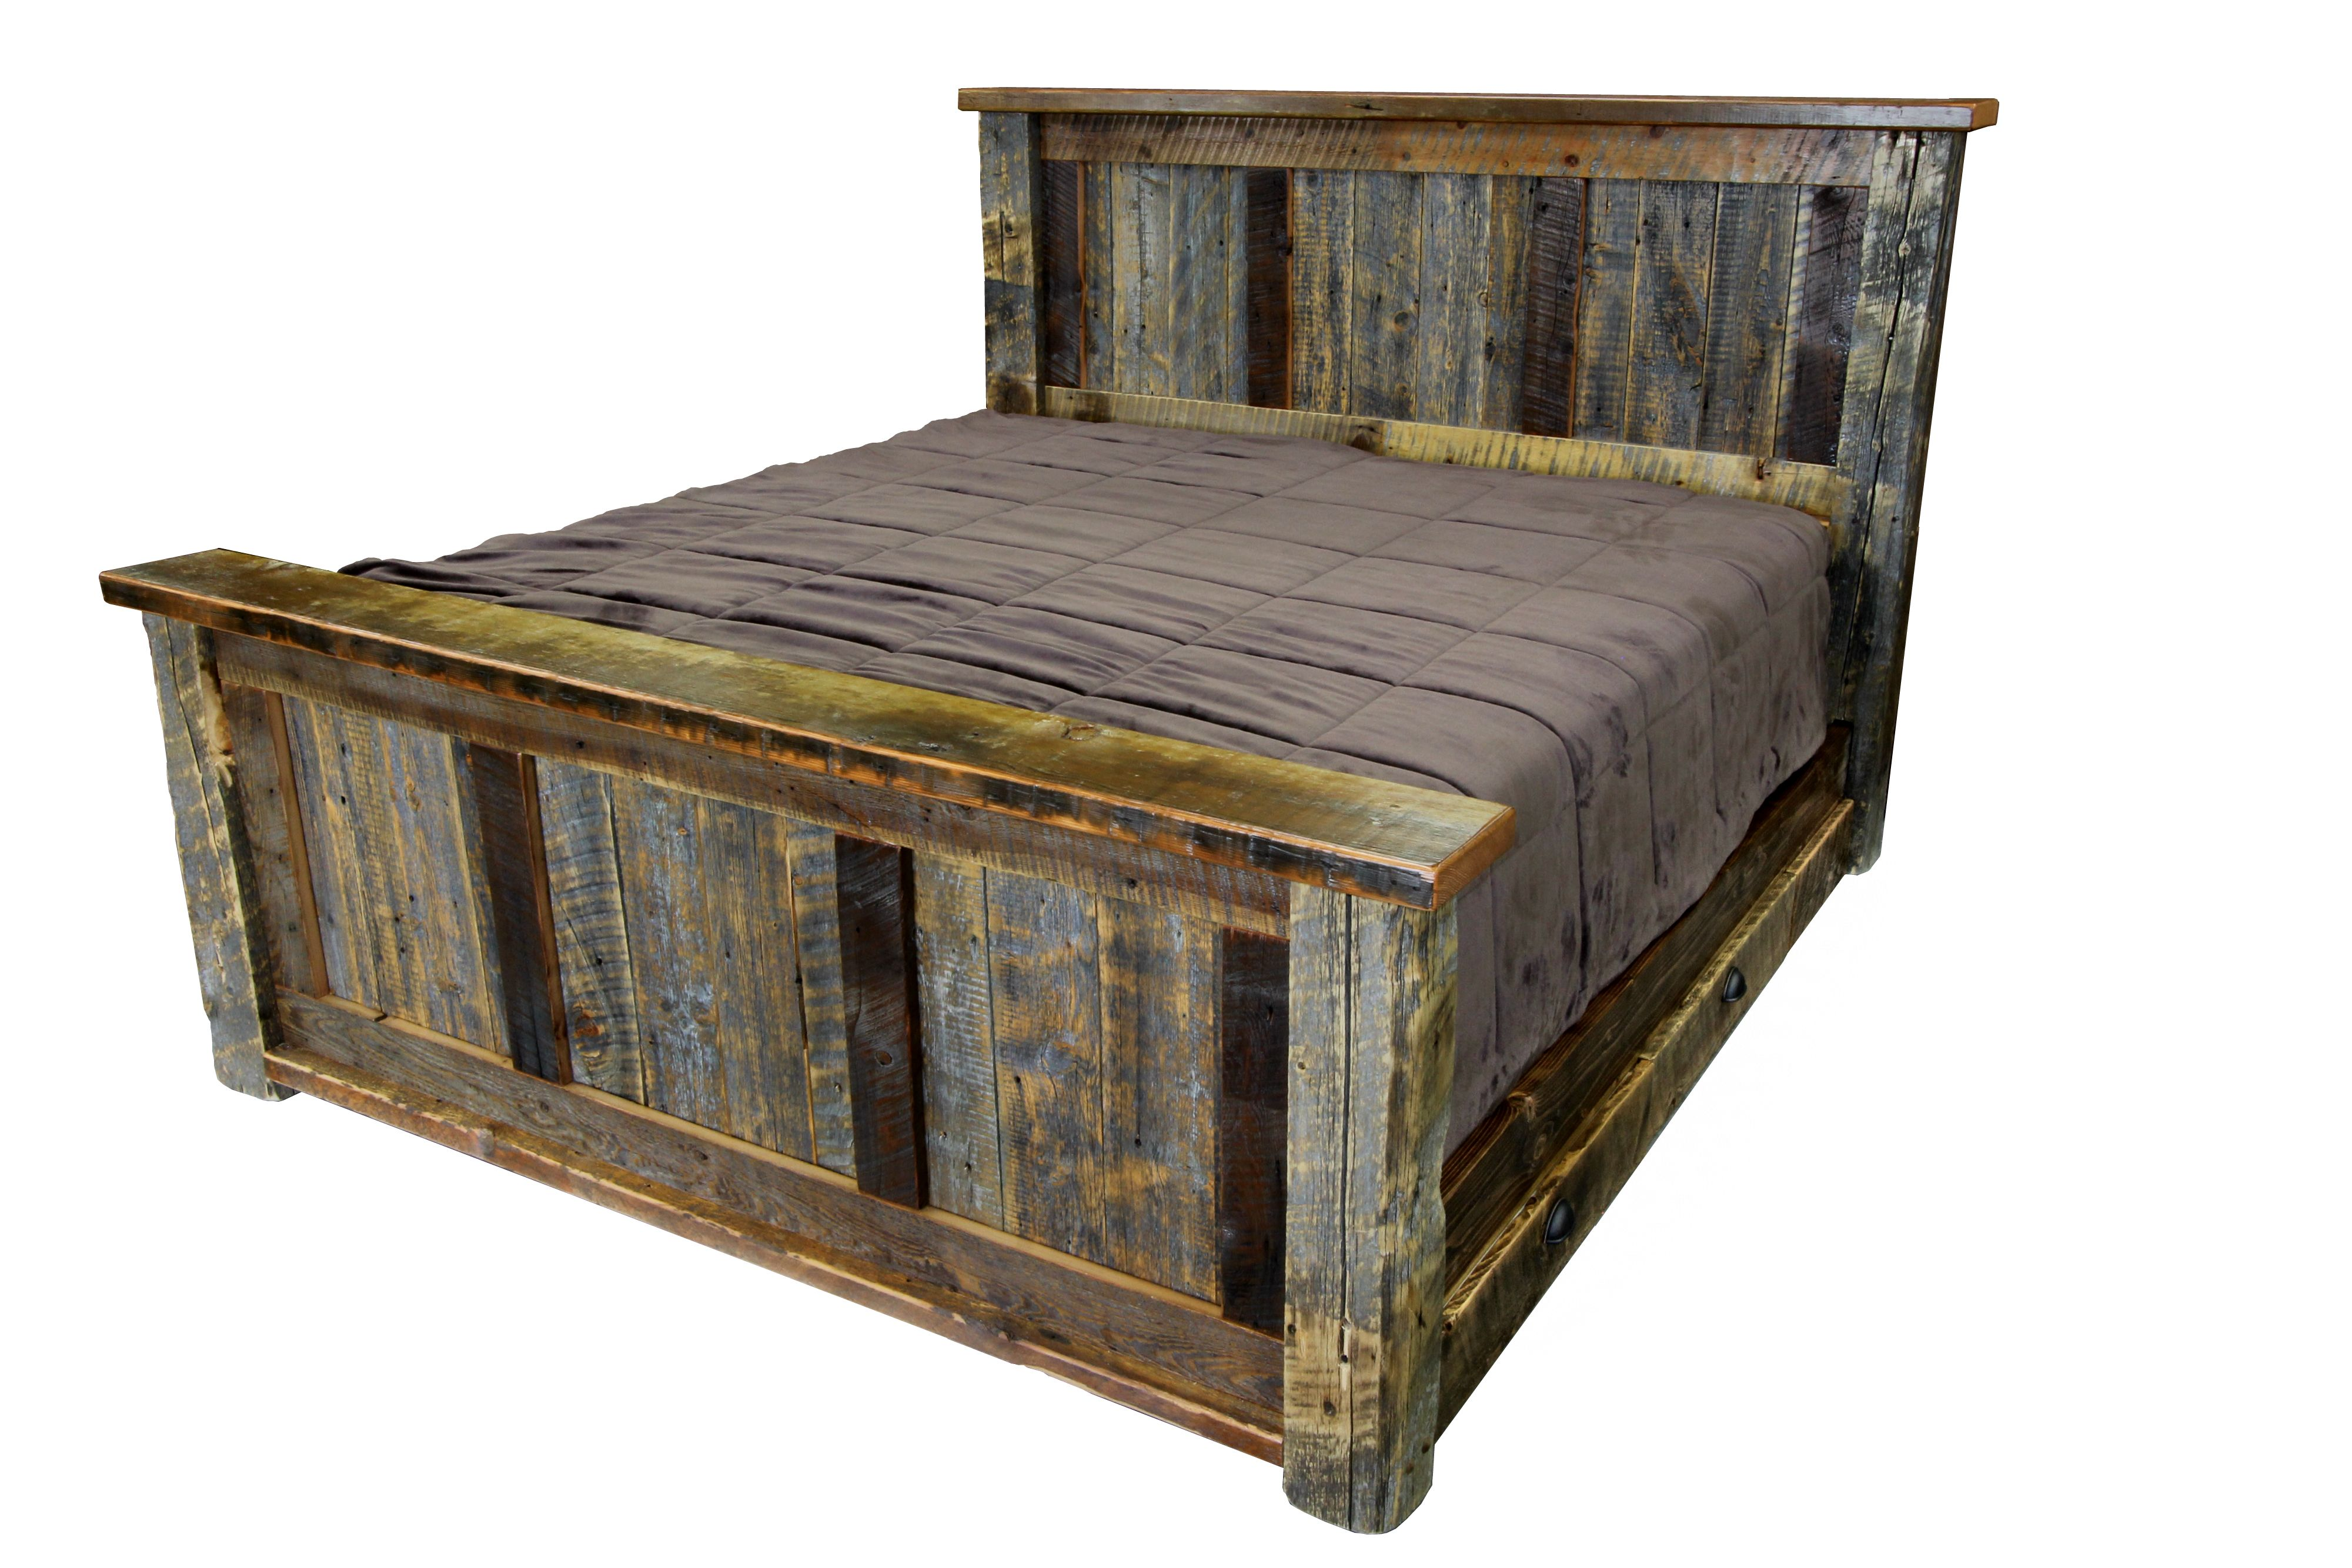 Our Most Popular Bed The Big Timber Made From Old Reclaimed Timbers And Grey Planks Available In Any Size